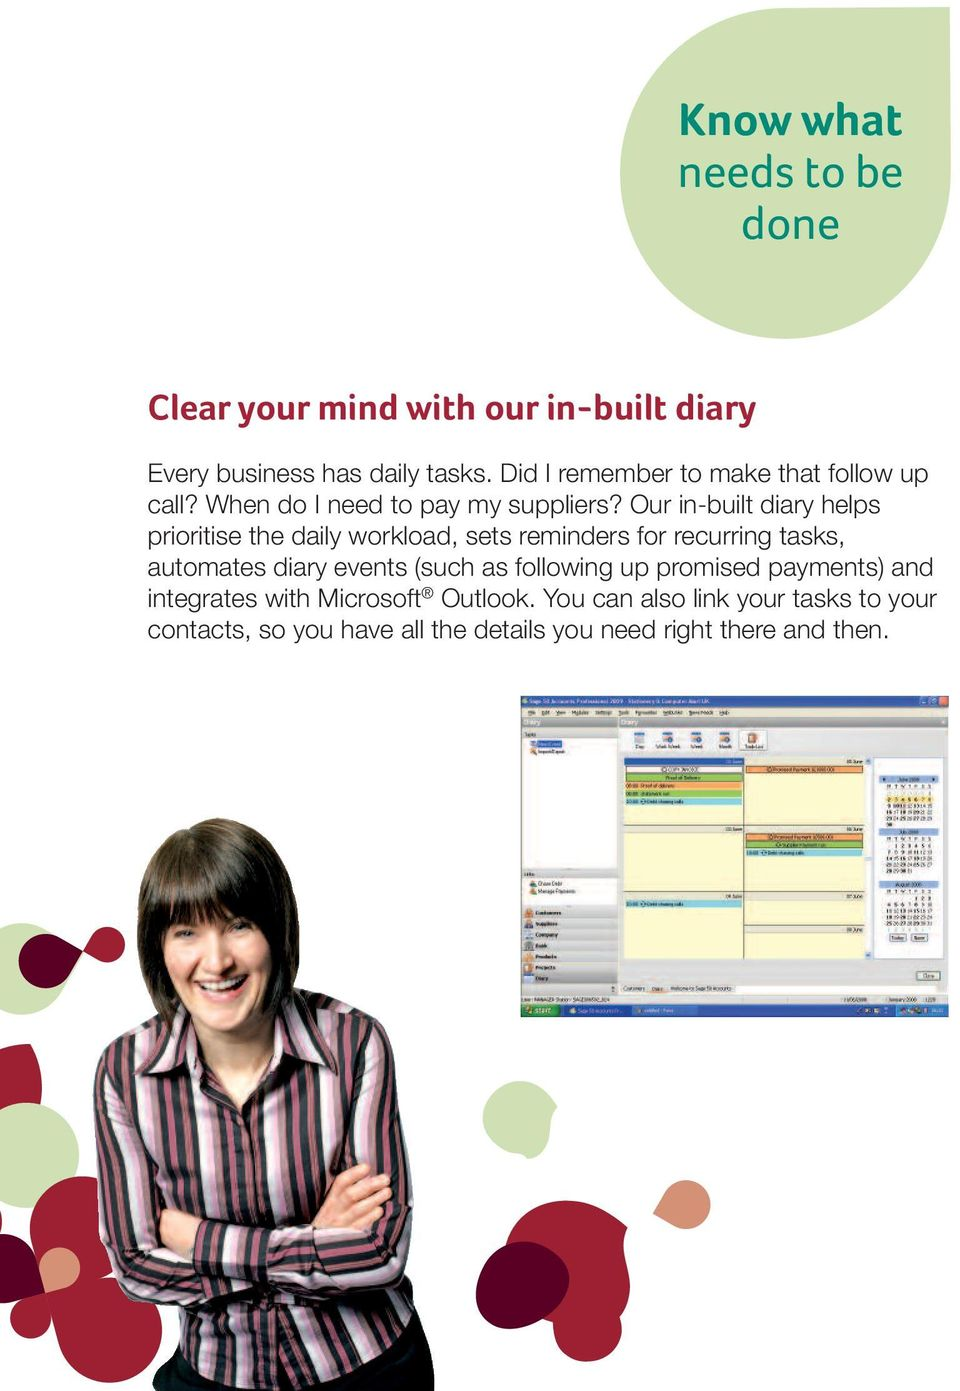 Our in-built diary helps prioritise the daily workload, sets reminders for recurring tasks, automates diary events